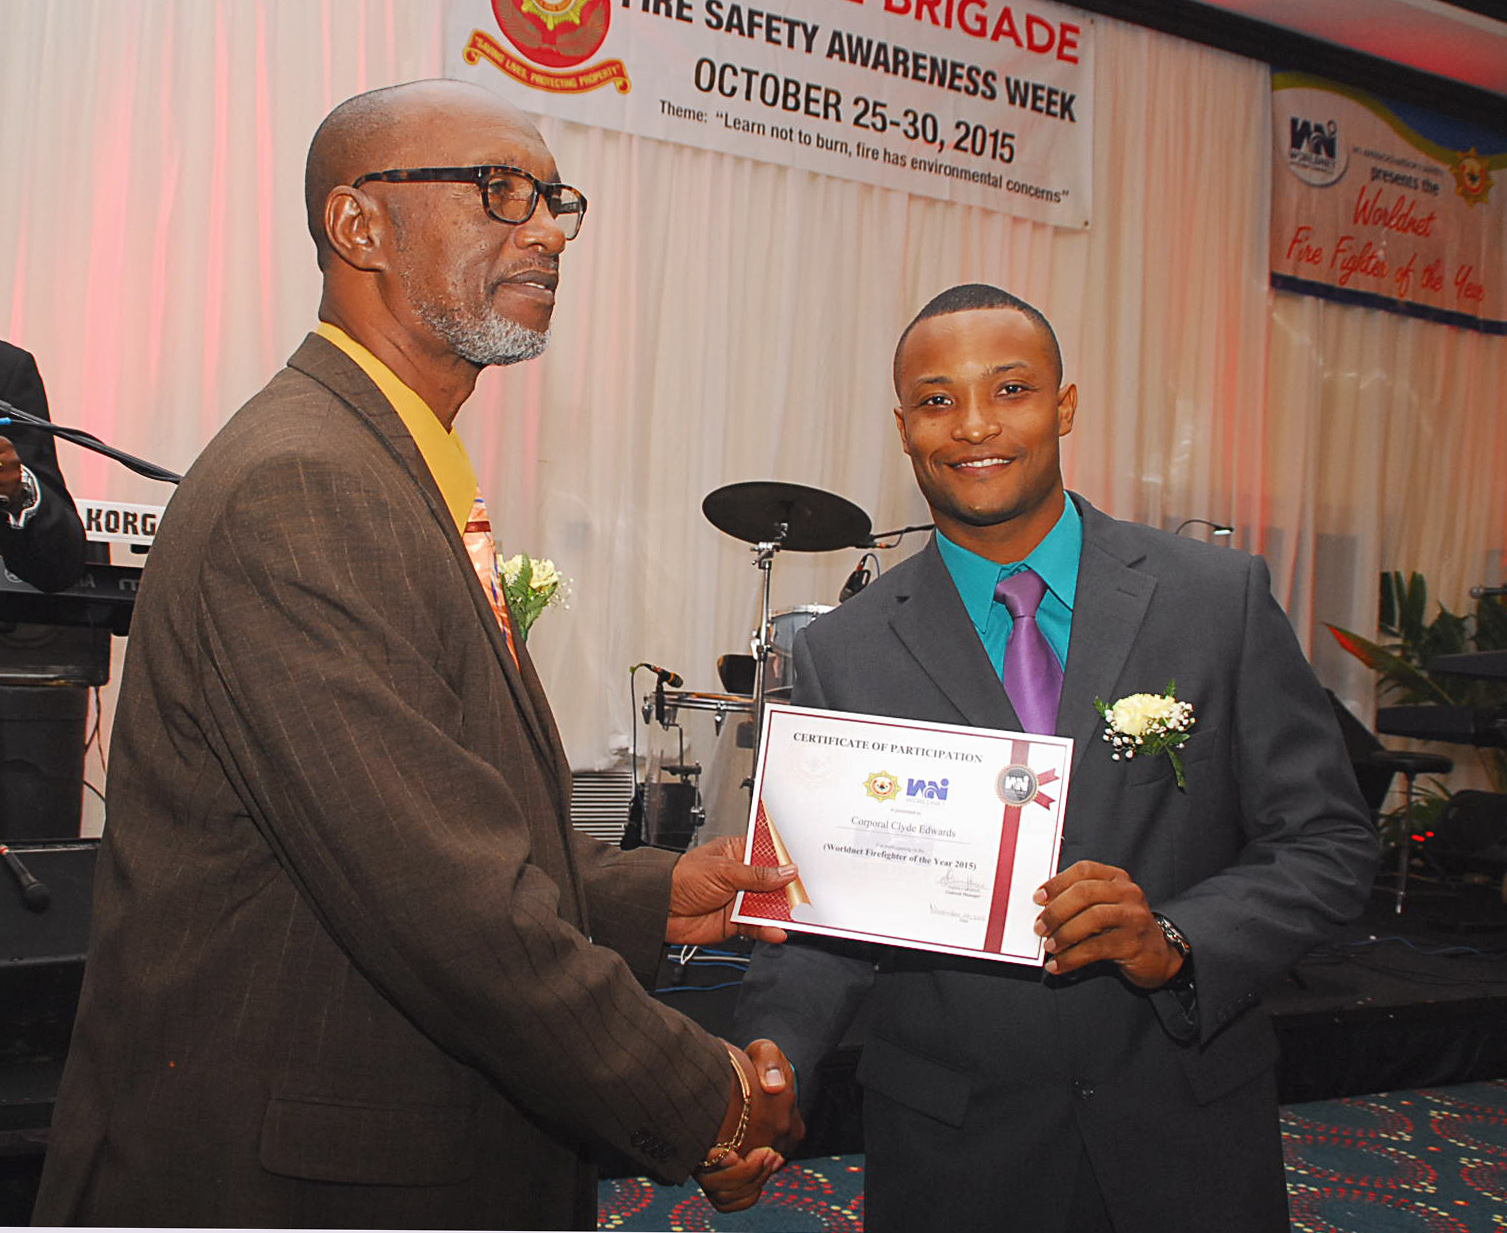 Award being distributed at Worldnet Firefighter of the year 2015 award ceremony